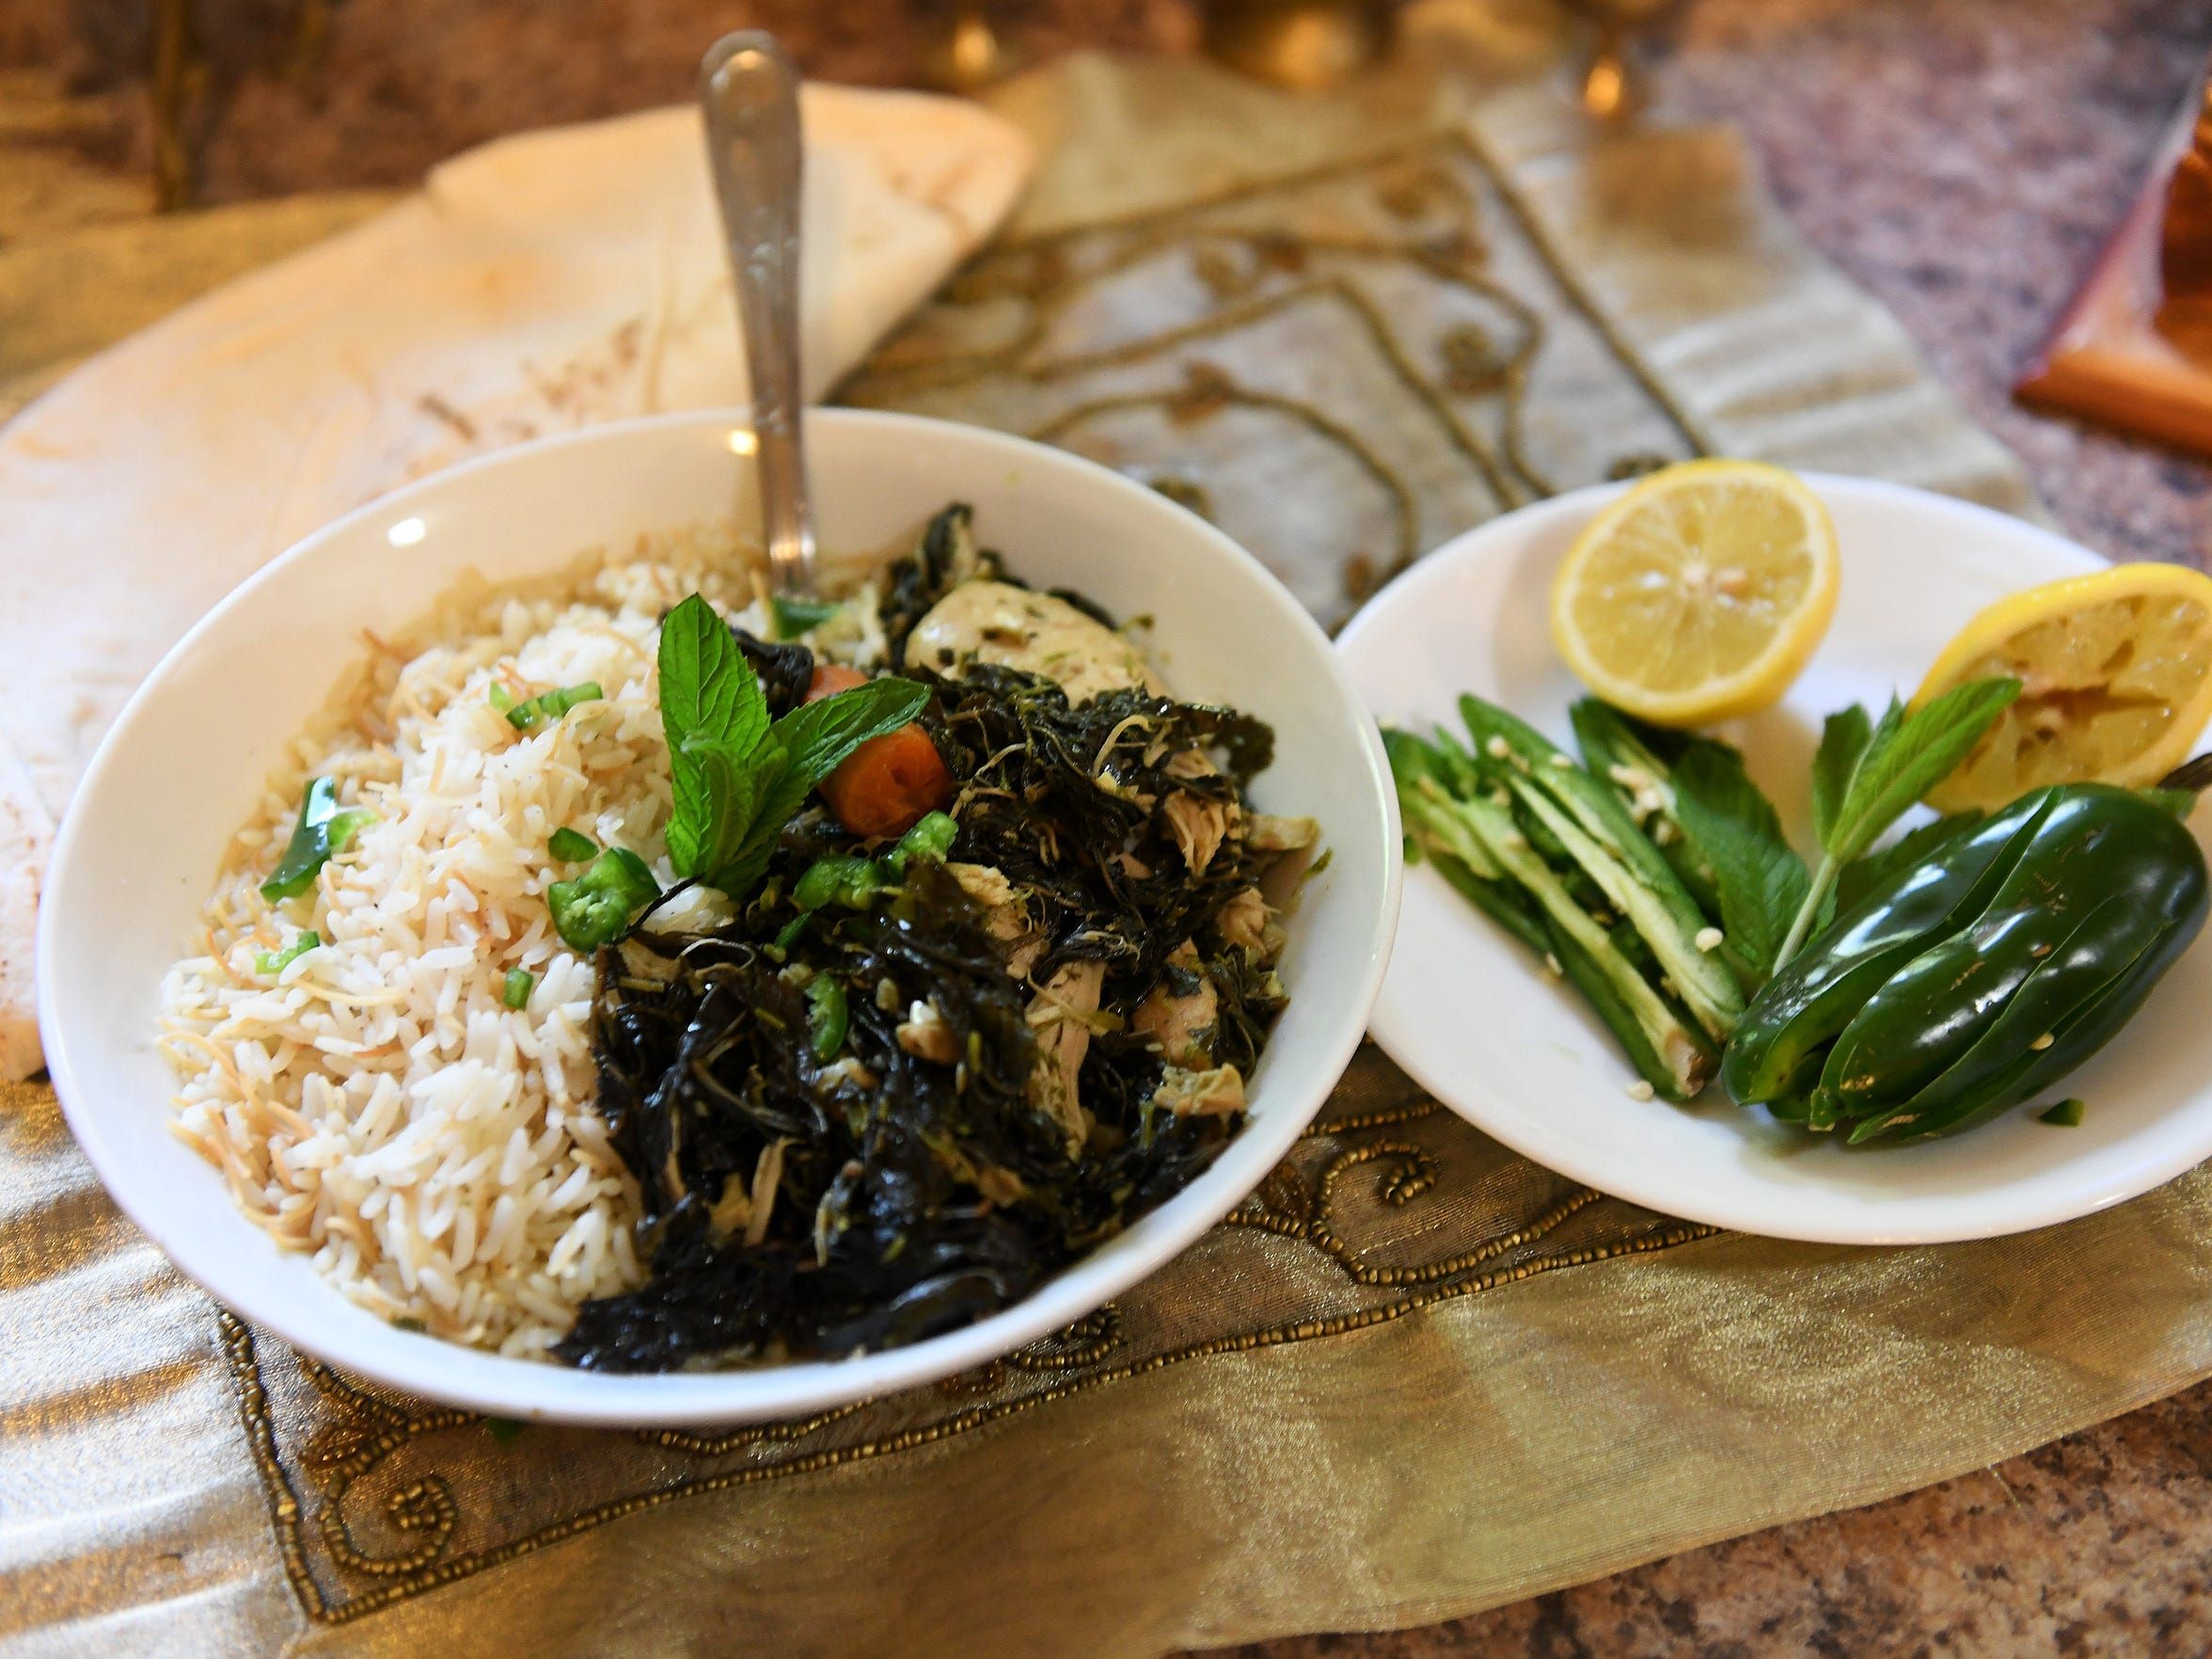 The dish mloukehia made by Summer Homayed with greens,